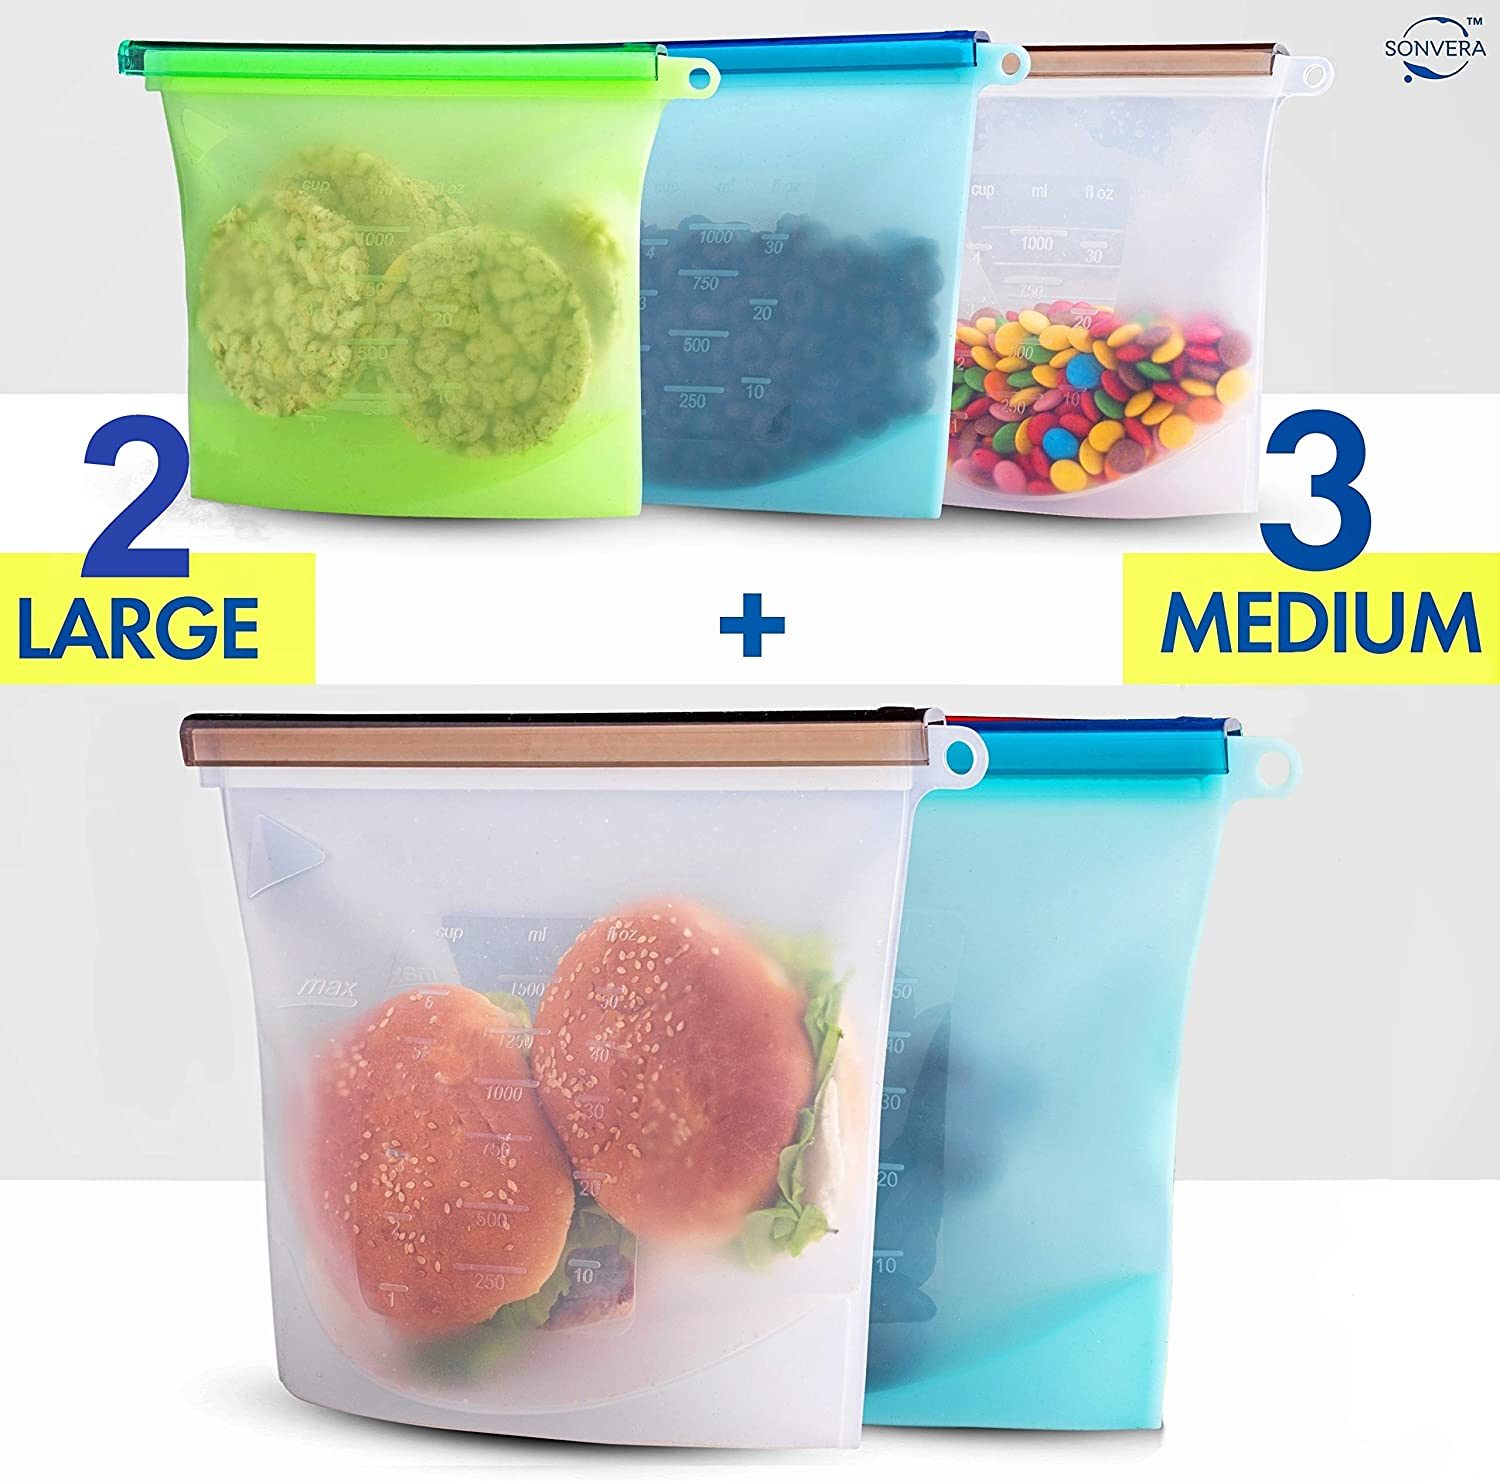 Silicone Bags Reusable Silicone Food Bag Reusable Sandwich Bags Reusable Ziplock Bags Silicone Storage Bags Silicon Containers Plastic Conteiner Freezer Gallon Size Zip Snack Lunch